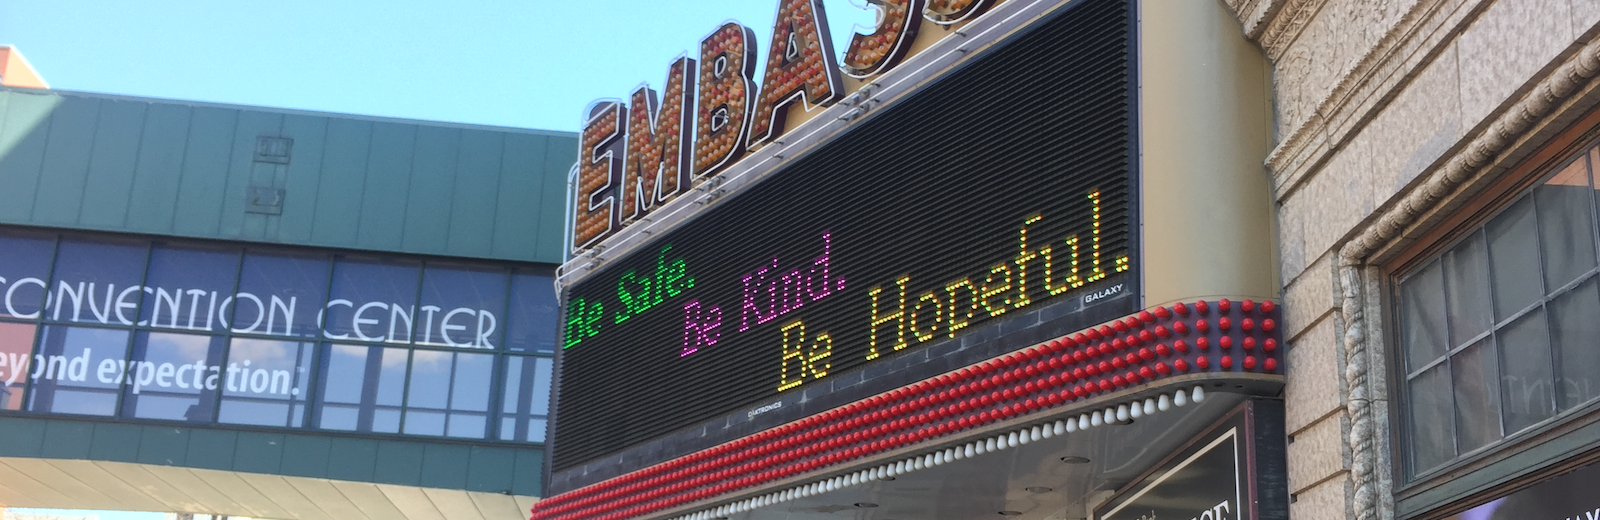 The Embassy Theatre marquee offers an encouraging message during the COVID-19 pandemic.